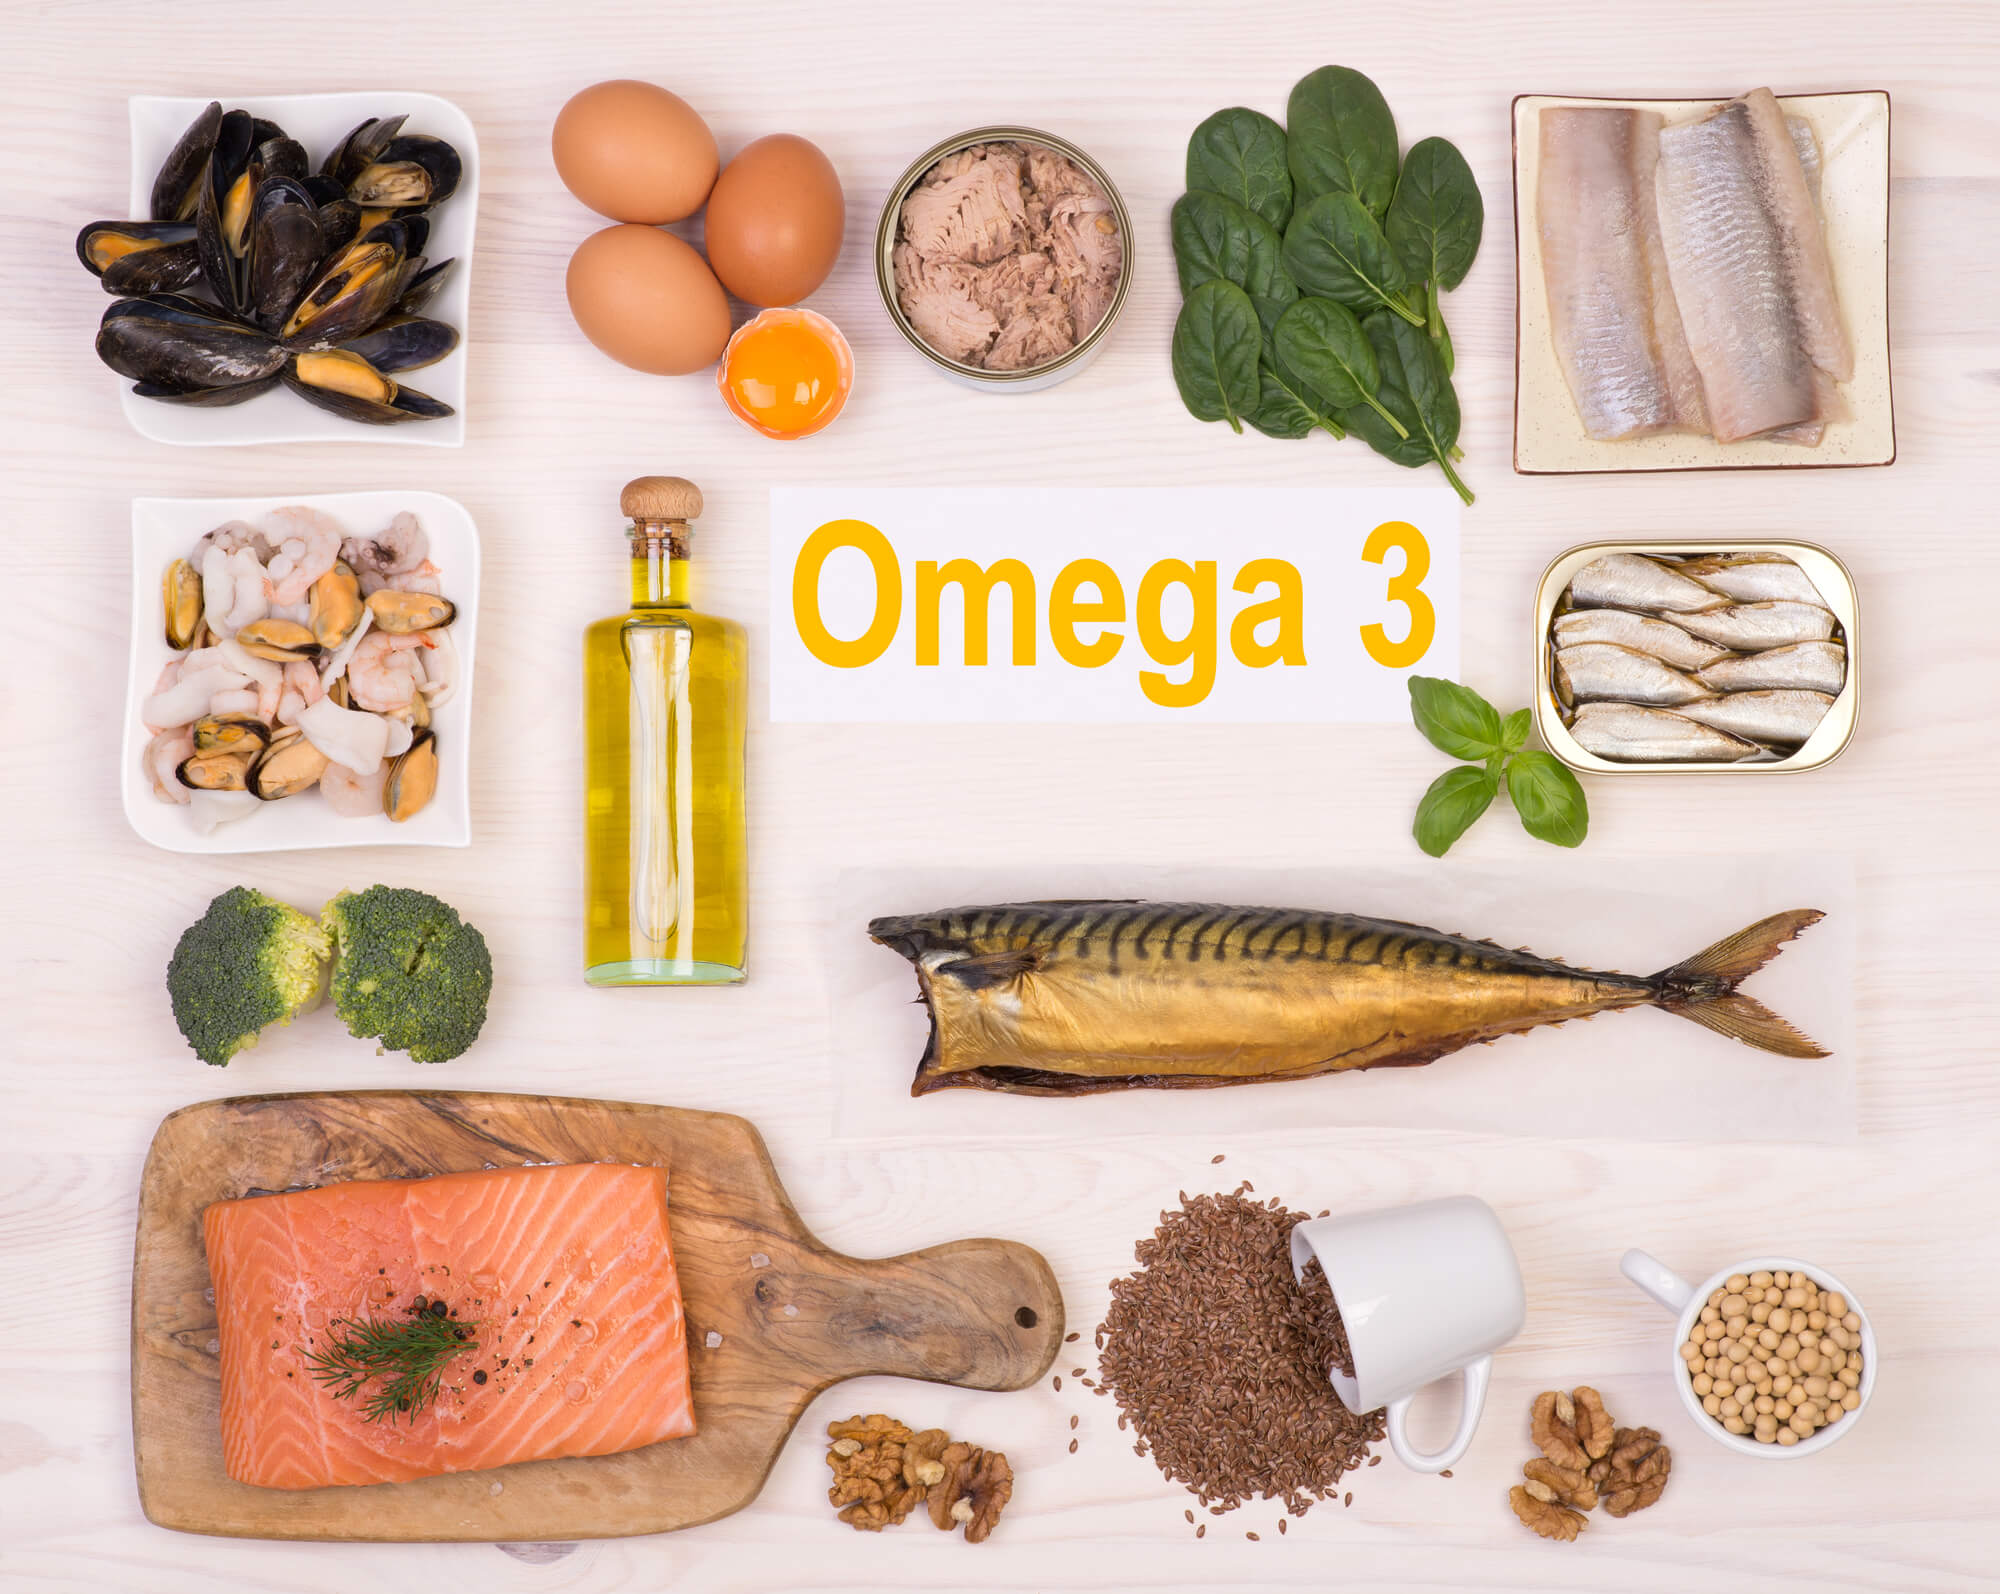 Rich in Omega-3 Fatty Acids